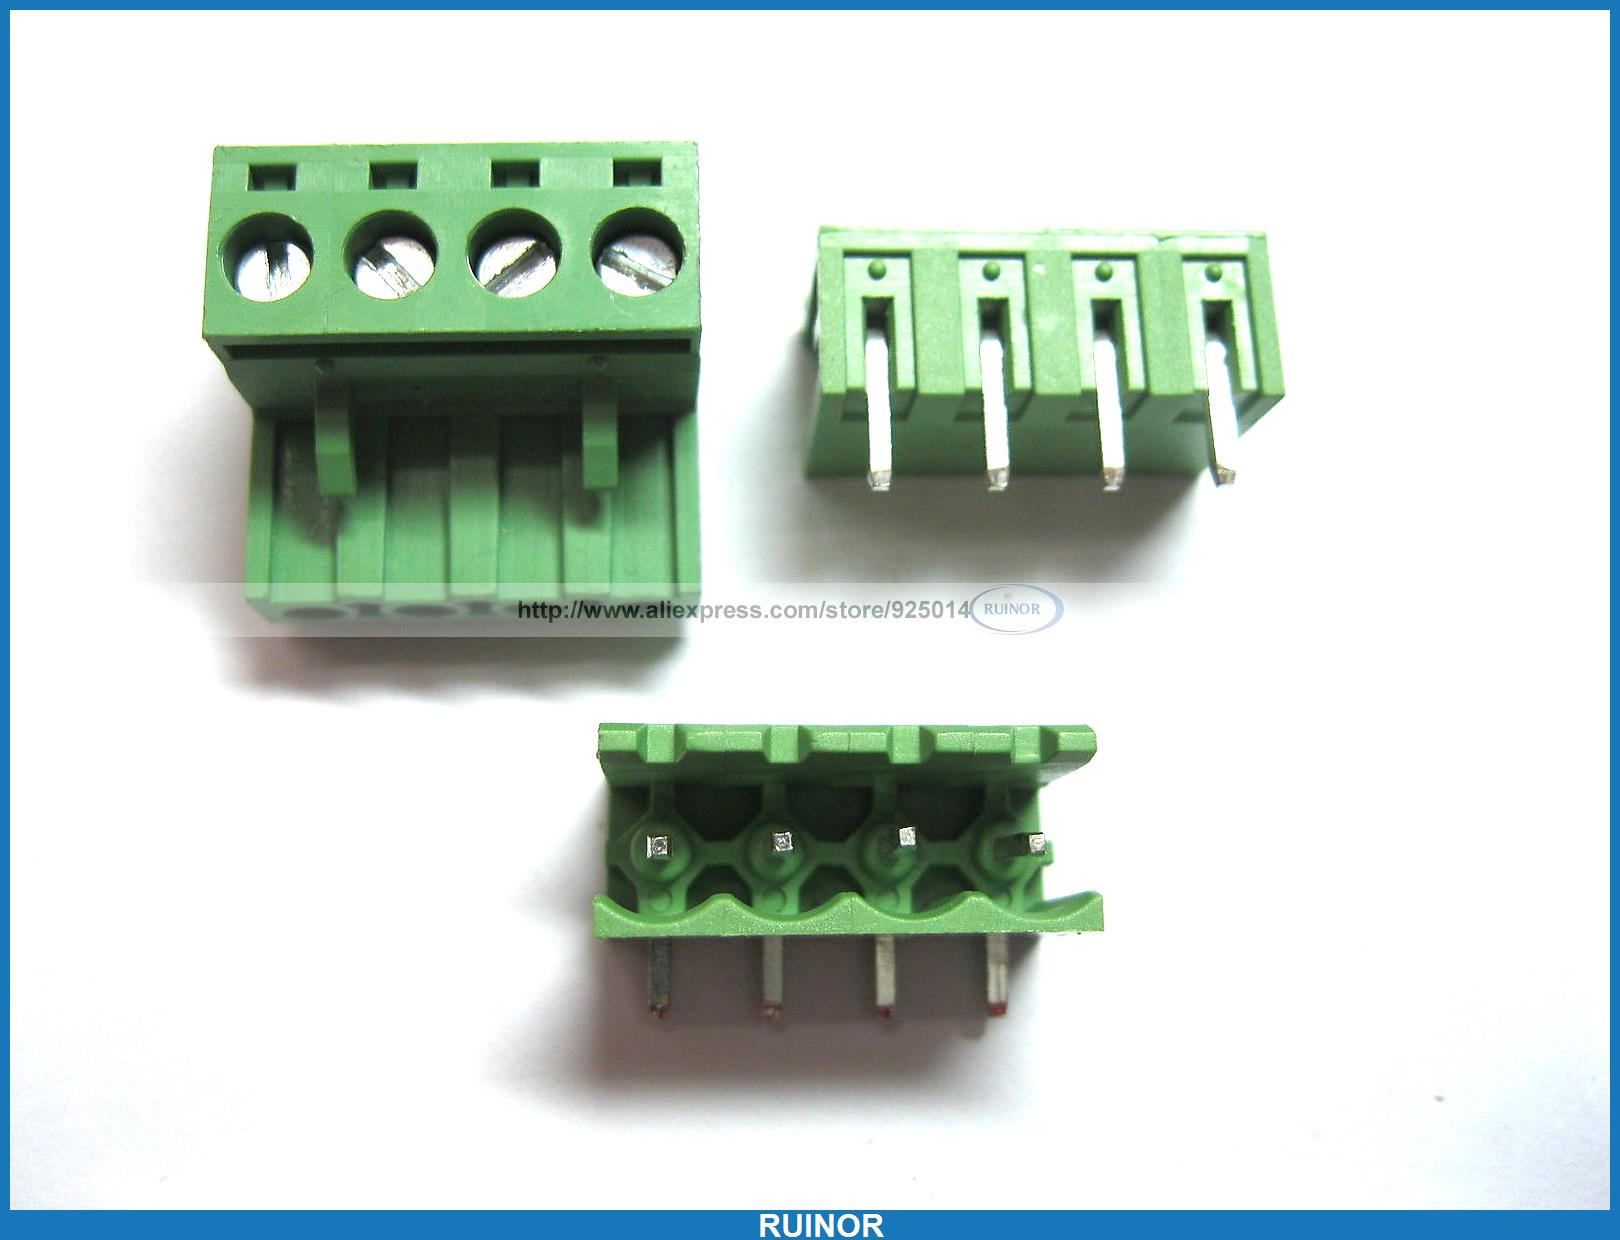 50 Pcs 5 08mm Angle 4 Pin Screw Terminal Block Connector Pluggable Type Green першанин в н последний бой штрафника